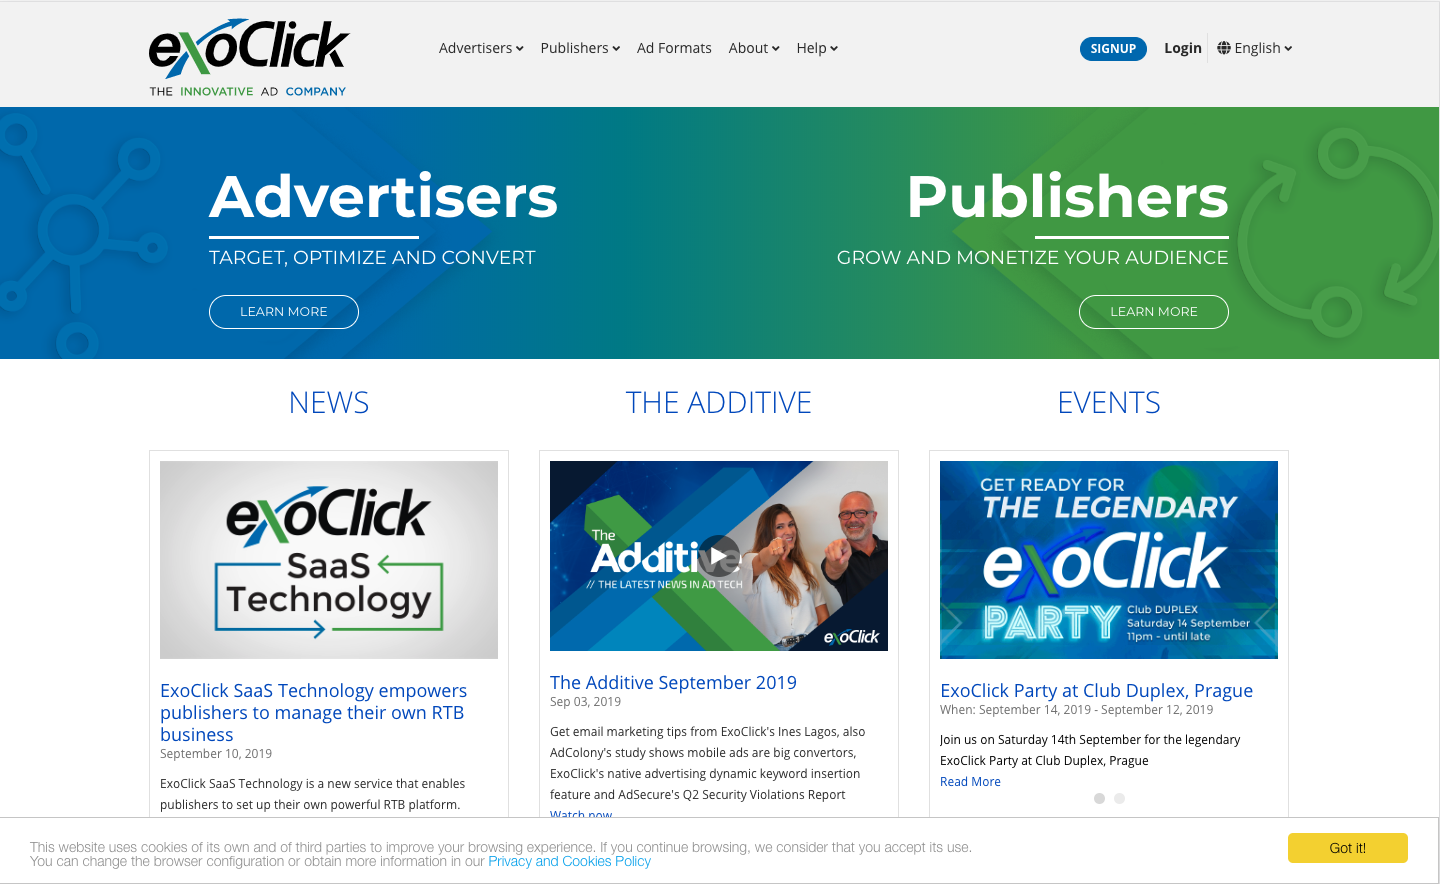 Preview of the ExoClick site